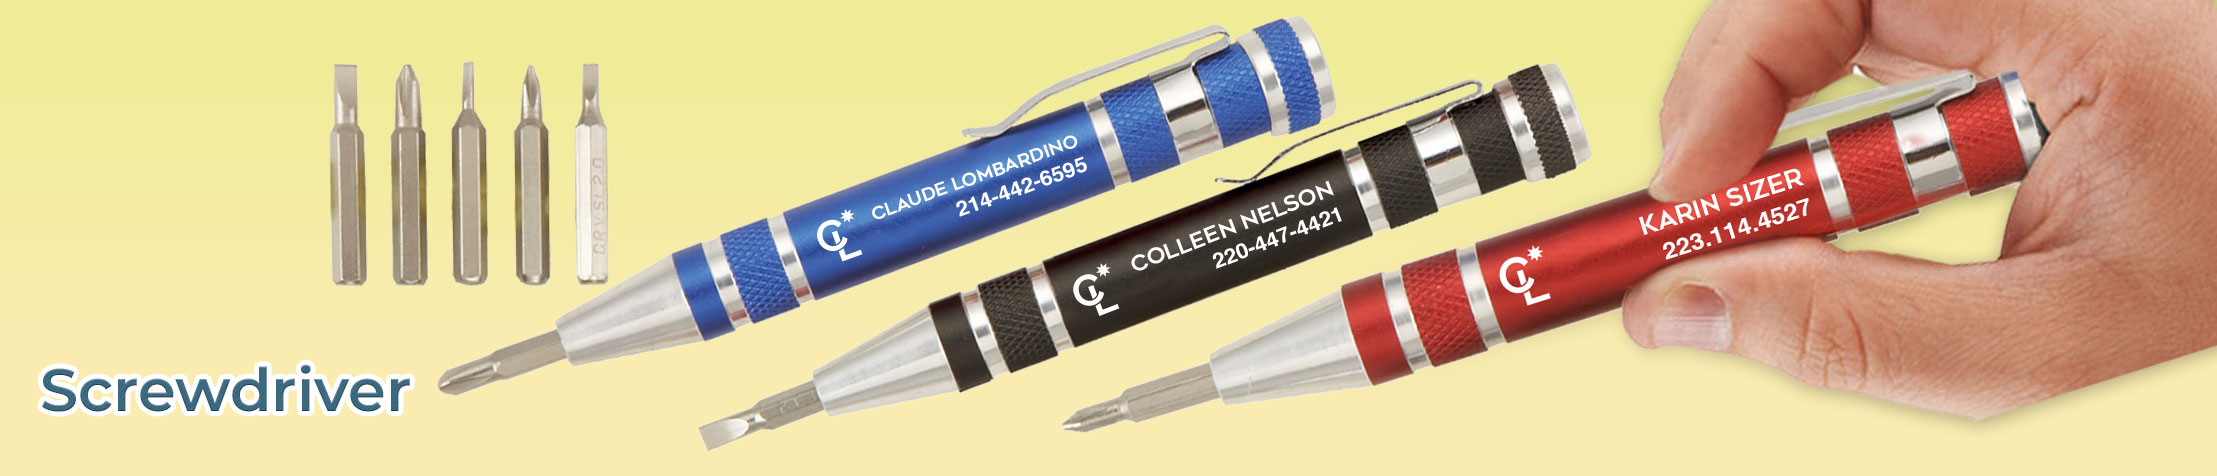 Coldwell Banker Real Estate Flashlights - Coldwell Banker personalized realtor promotional products | BestPrintBuy.com